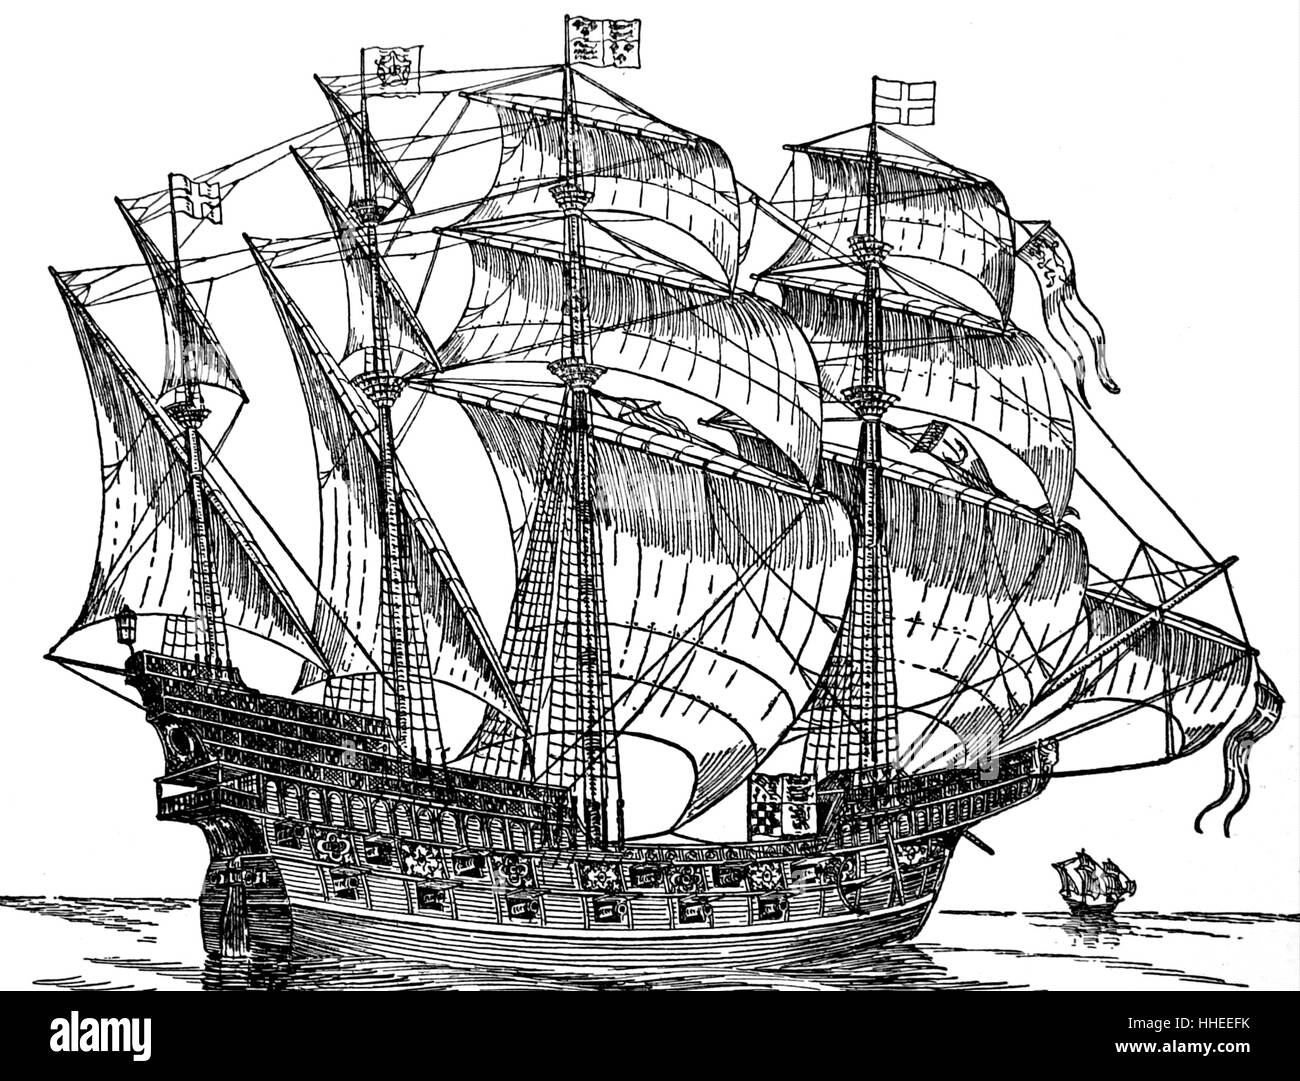 Woodcut depicting a 16th Century Tudor naval ship or Carrack. - Stock Image